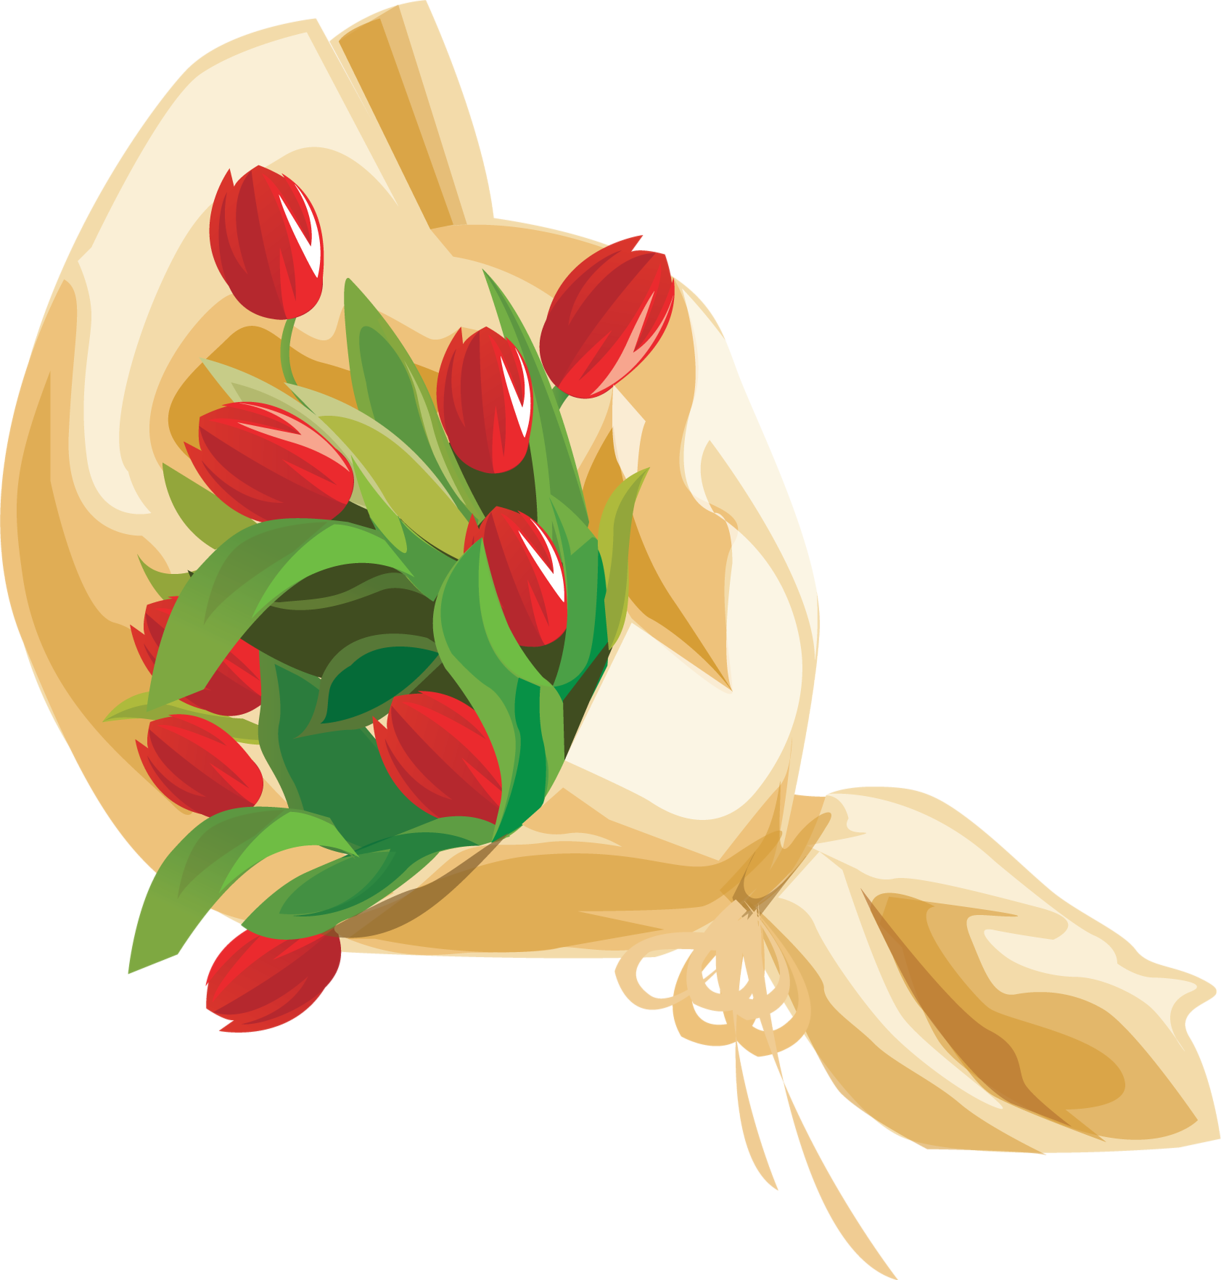 Bouquet vector animated. Of flowers images flower